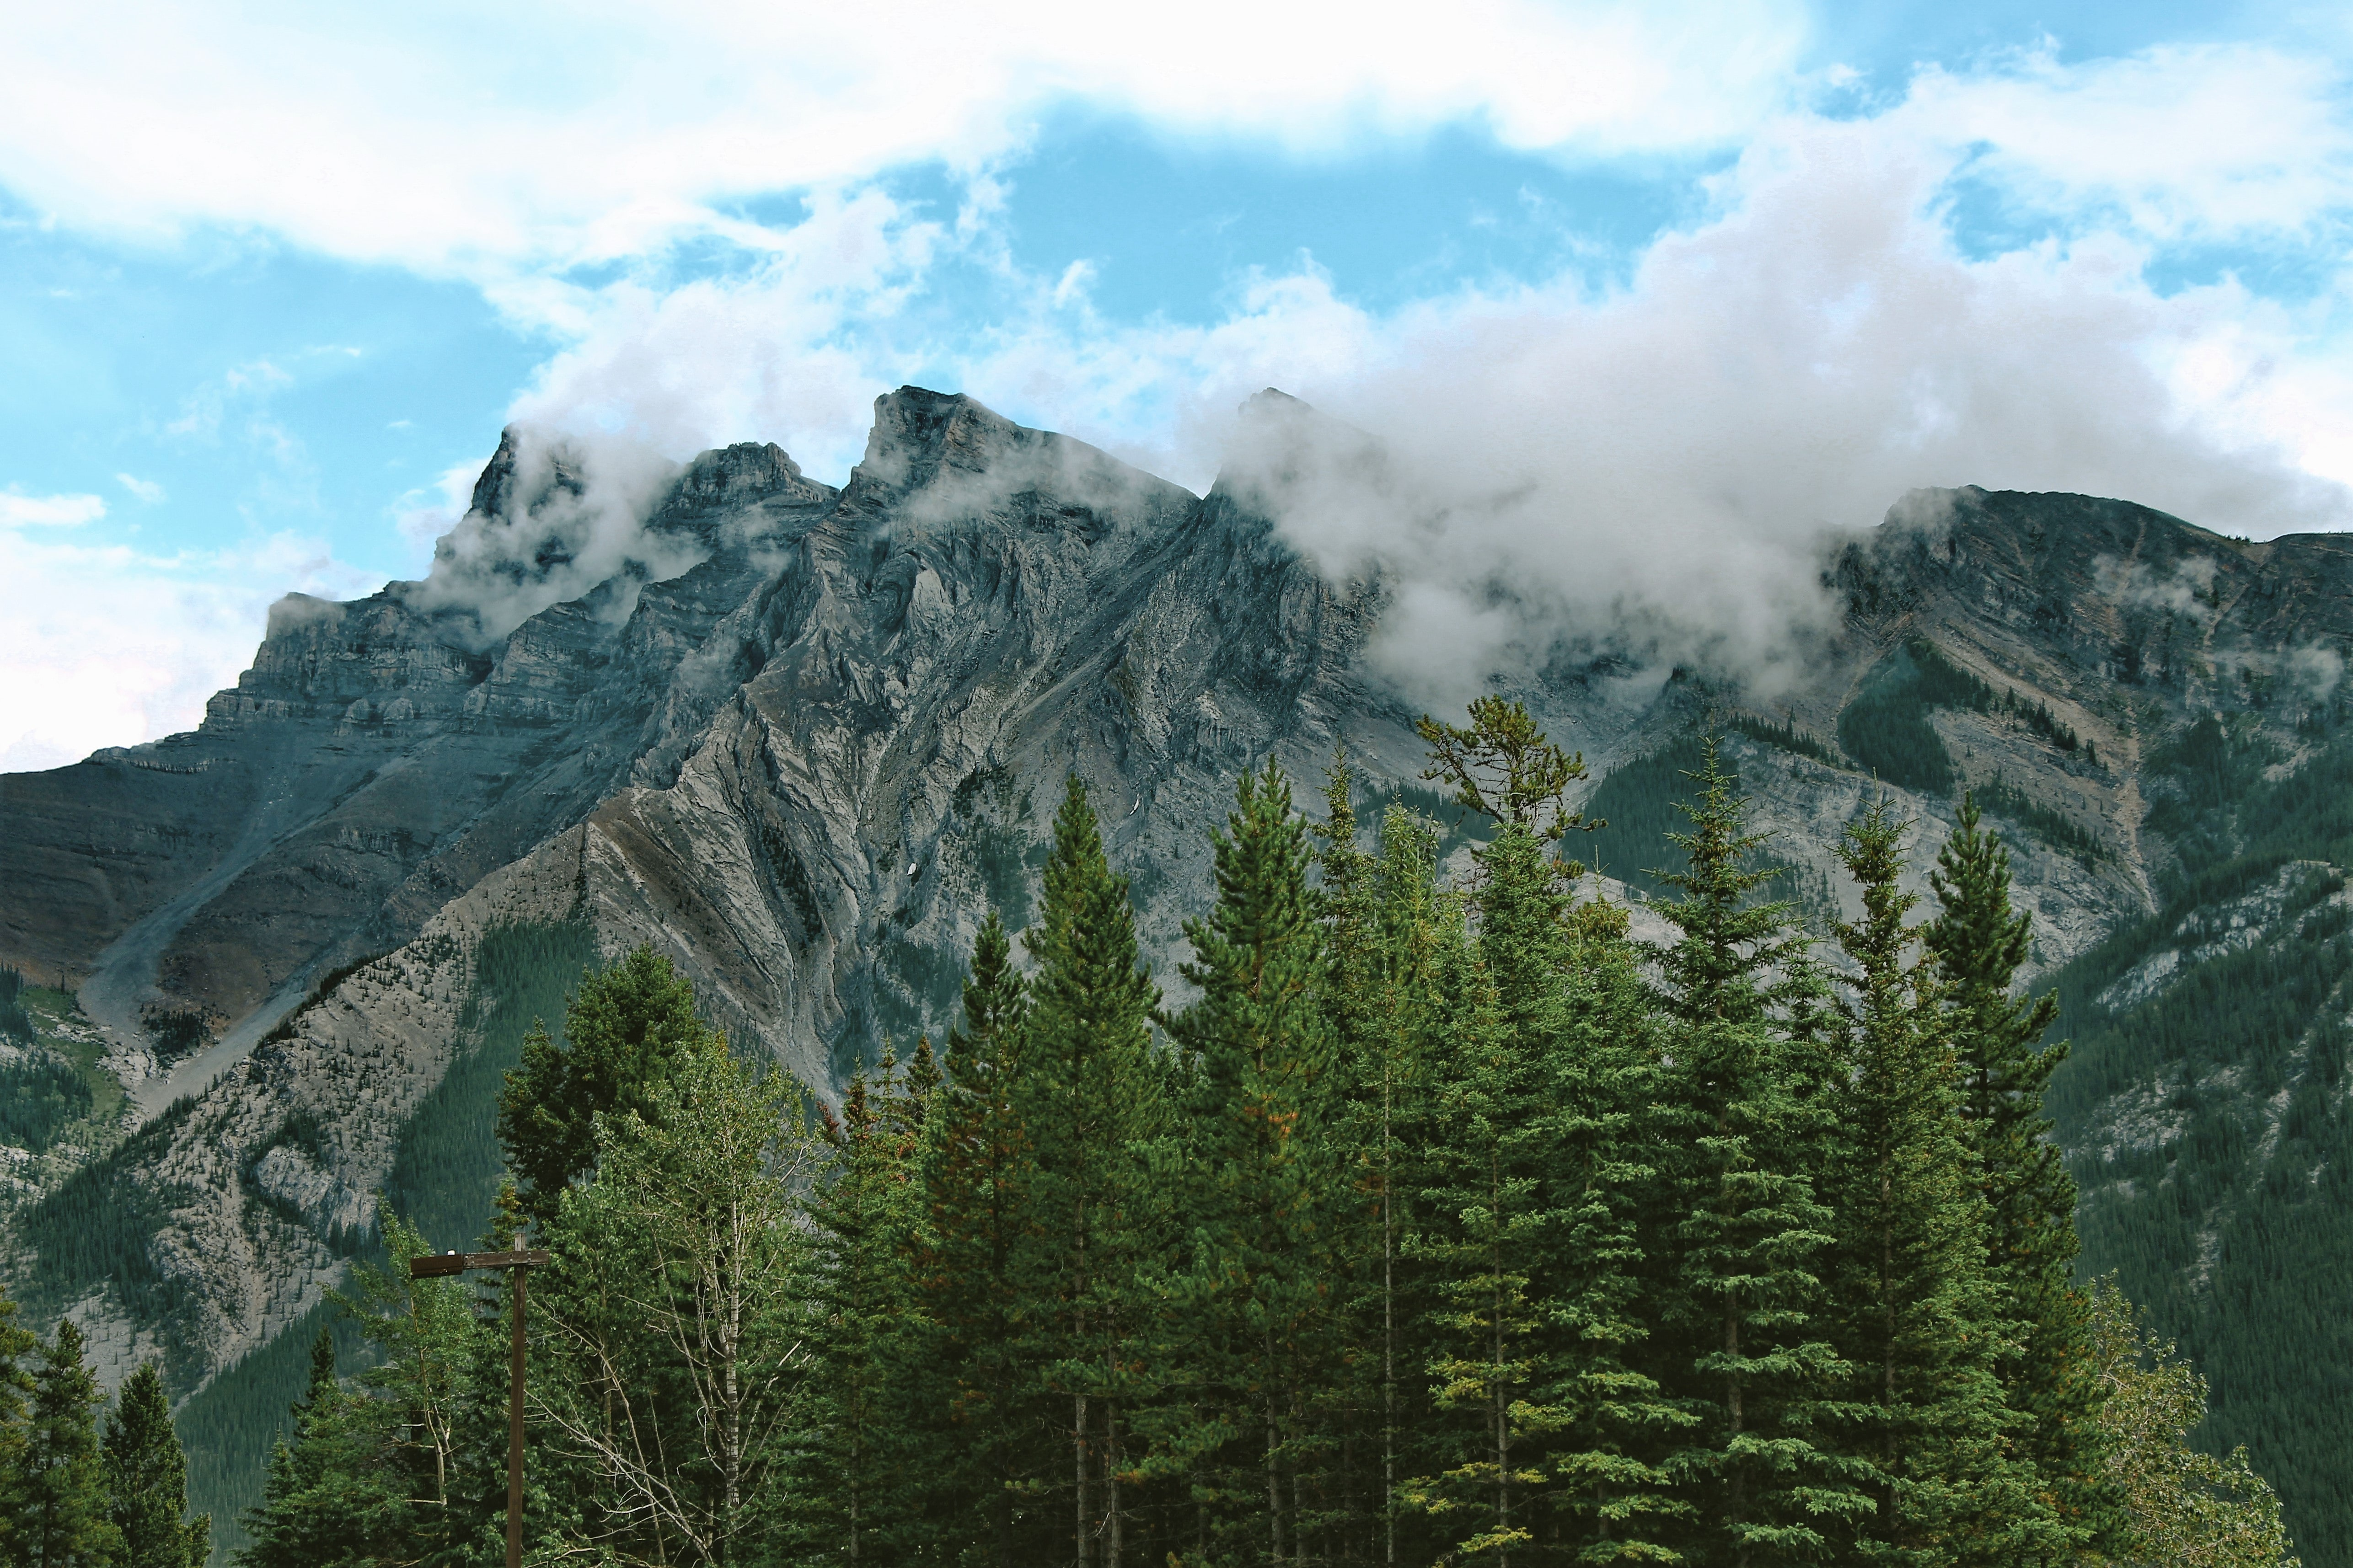 Tall coniferous trees at the foot of a mountain ridge in Banff